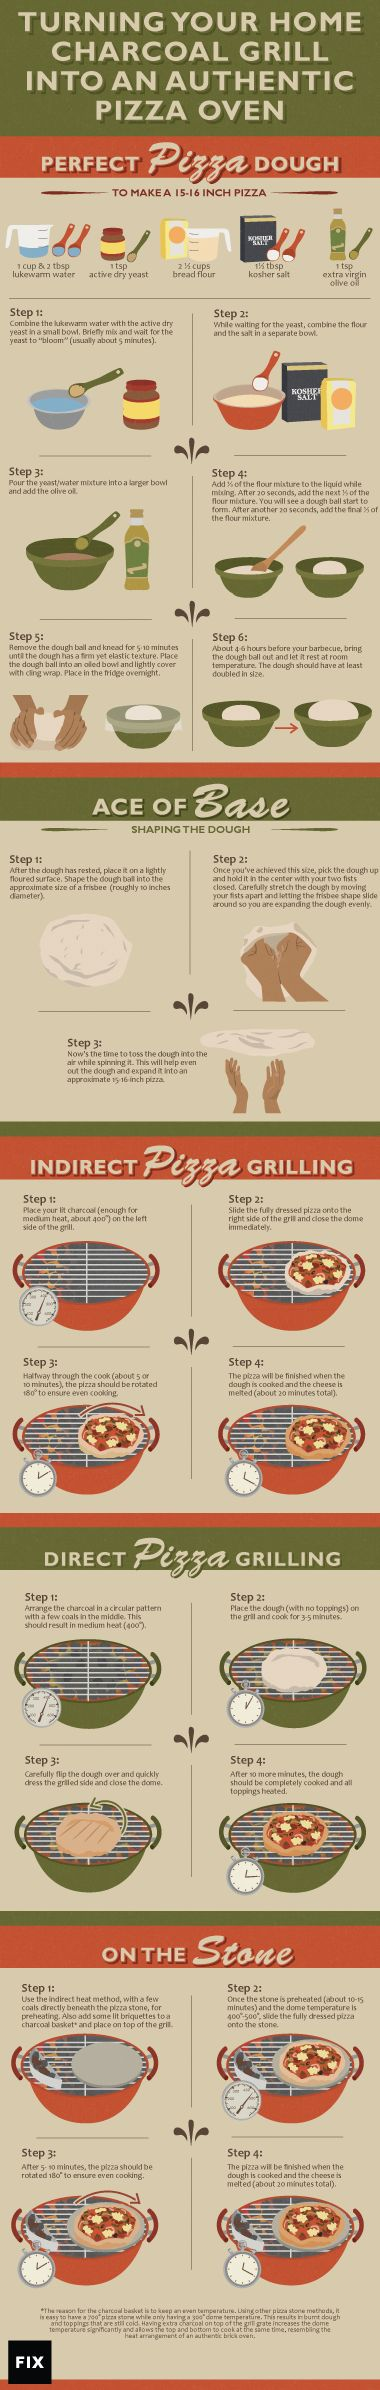 Many believe pizza can only be delivered, de-thawed, or slaved over in a hot kitchen using an oven. No more! Learn how to do outdoor pizza on your charcoal barbecue with these easy steps.